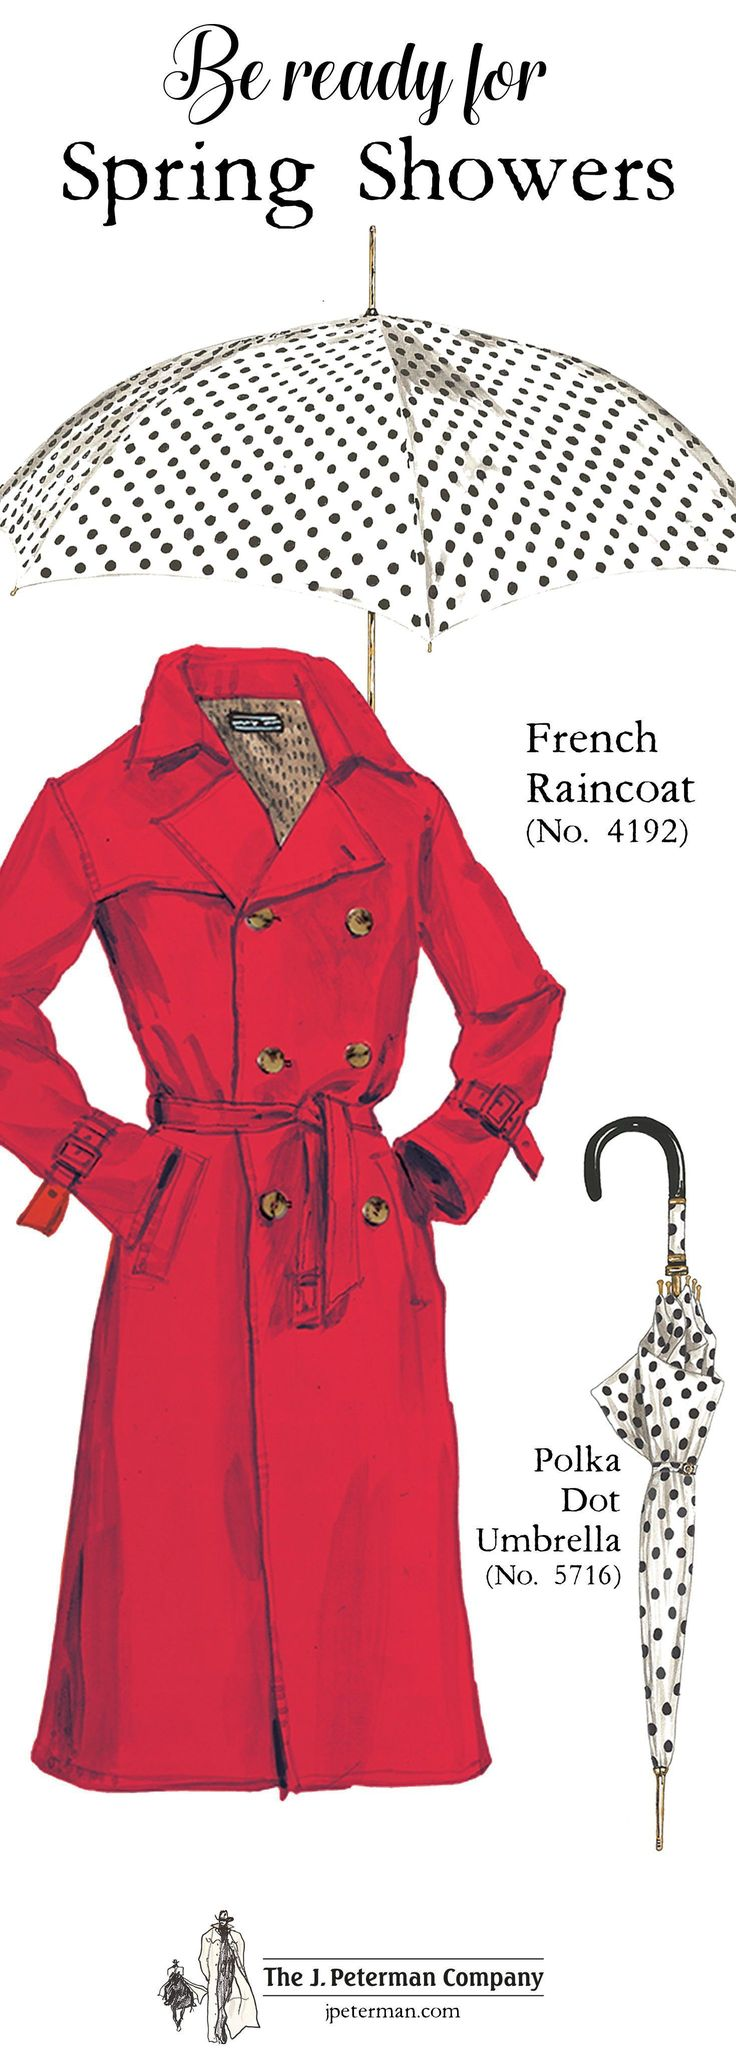 French Raincoat (No. 4192). Spotted in a shop in the Marais; gives me flashbacks to A Woman Is a Woman and Umbrellas of Cherbourg. Water repellent cotton-nylon blend, fully lined. Trim double-breasted trenchcoat-style, with front flap, adjustable cuffs, notched collar and deep back vent. Polka Dot Umbrella (No. 5716). Regal brass hardware. Decorative polka dot piece above black handle. #RaincoatsForWomenPolkaDots